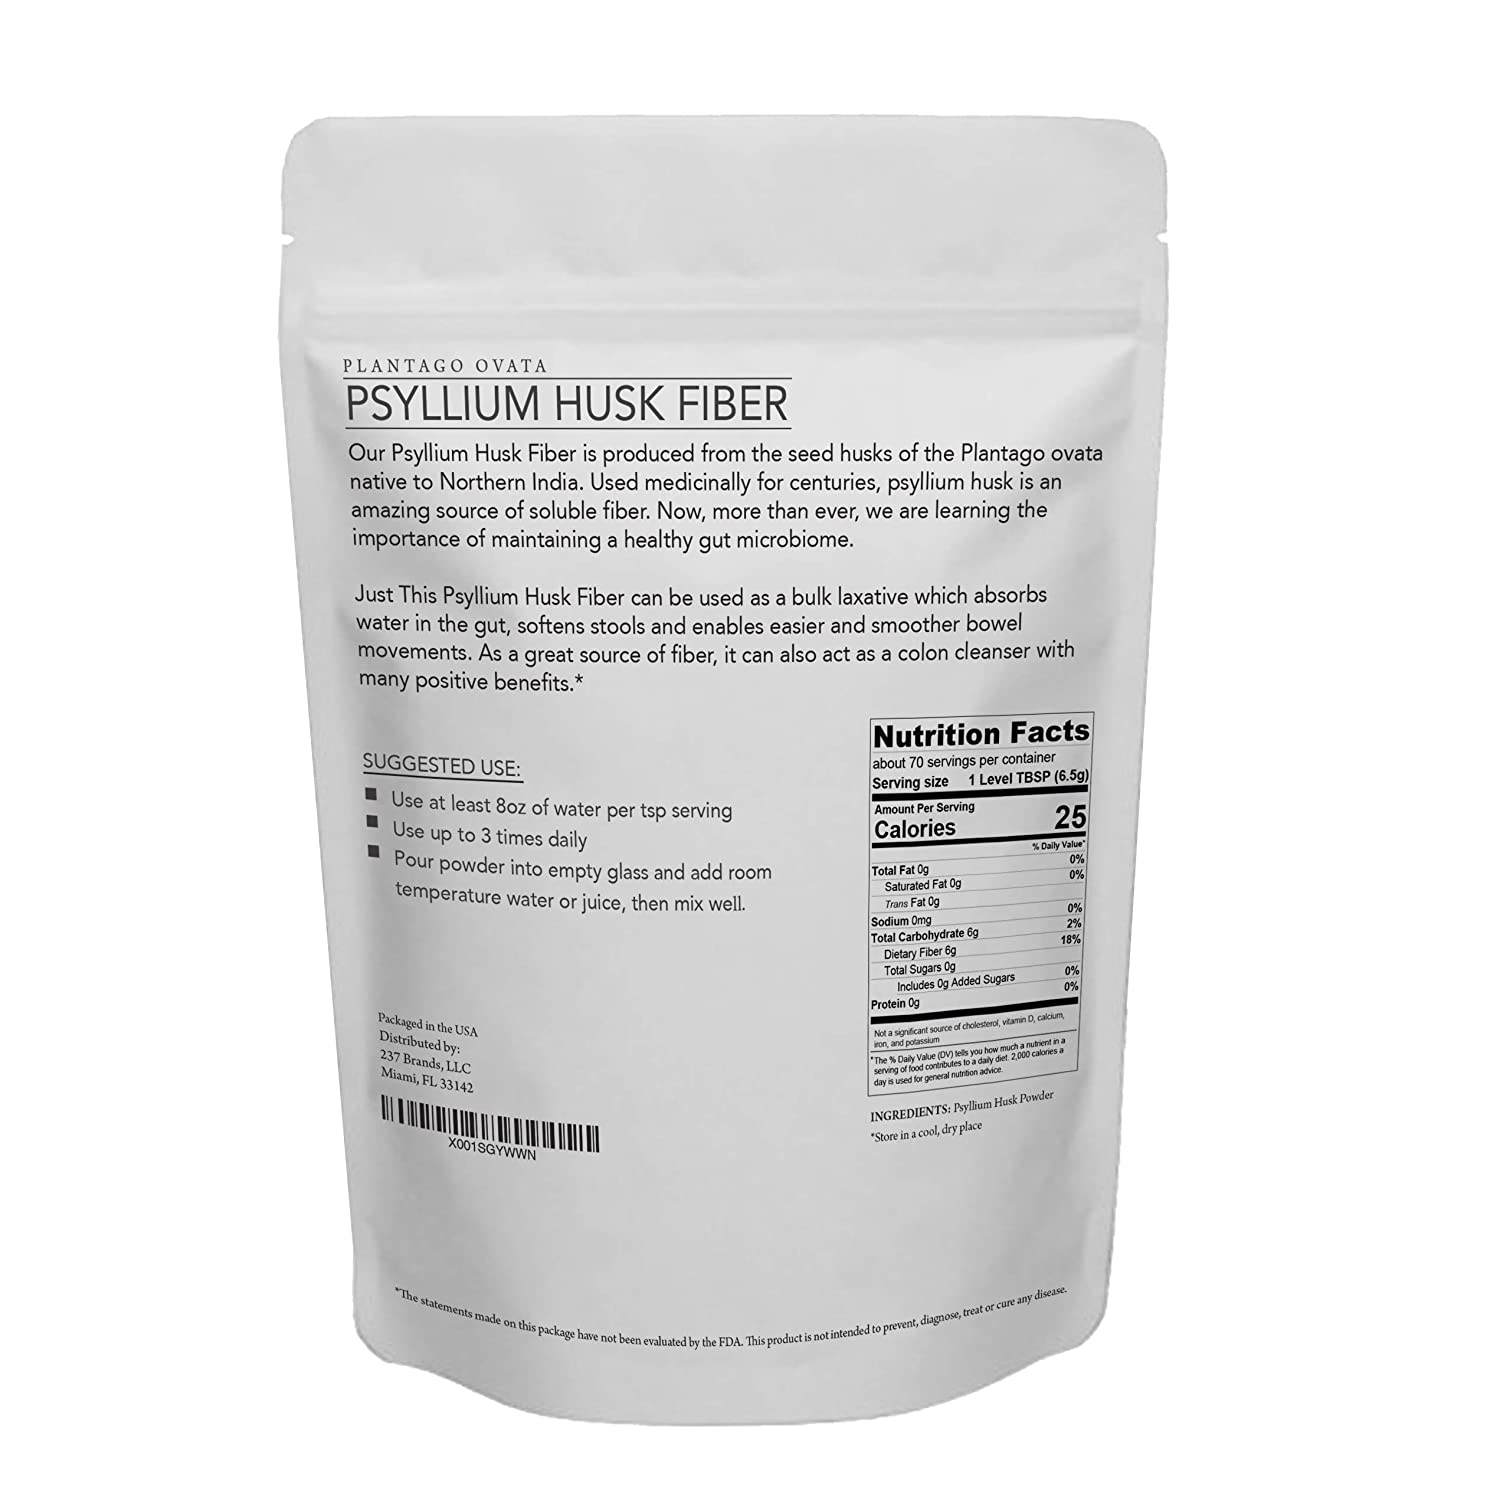 Fine Natural Psyllium Husk Fiber Powder Premium Soluble Fiber Supplement And Prebiotic Simply Mix With Water Or Use In Baking To Aid Constipation And Spiritservingveterans Wood Chair Design Ideas Spiritservingveteransorg